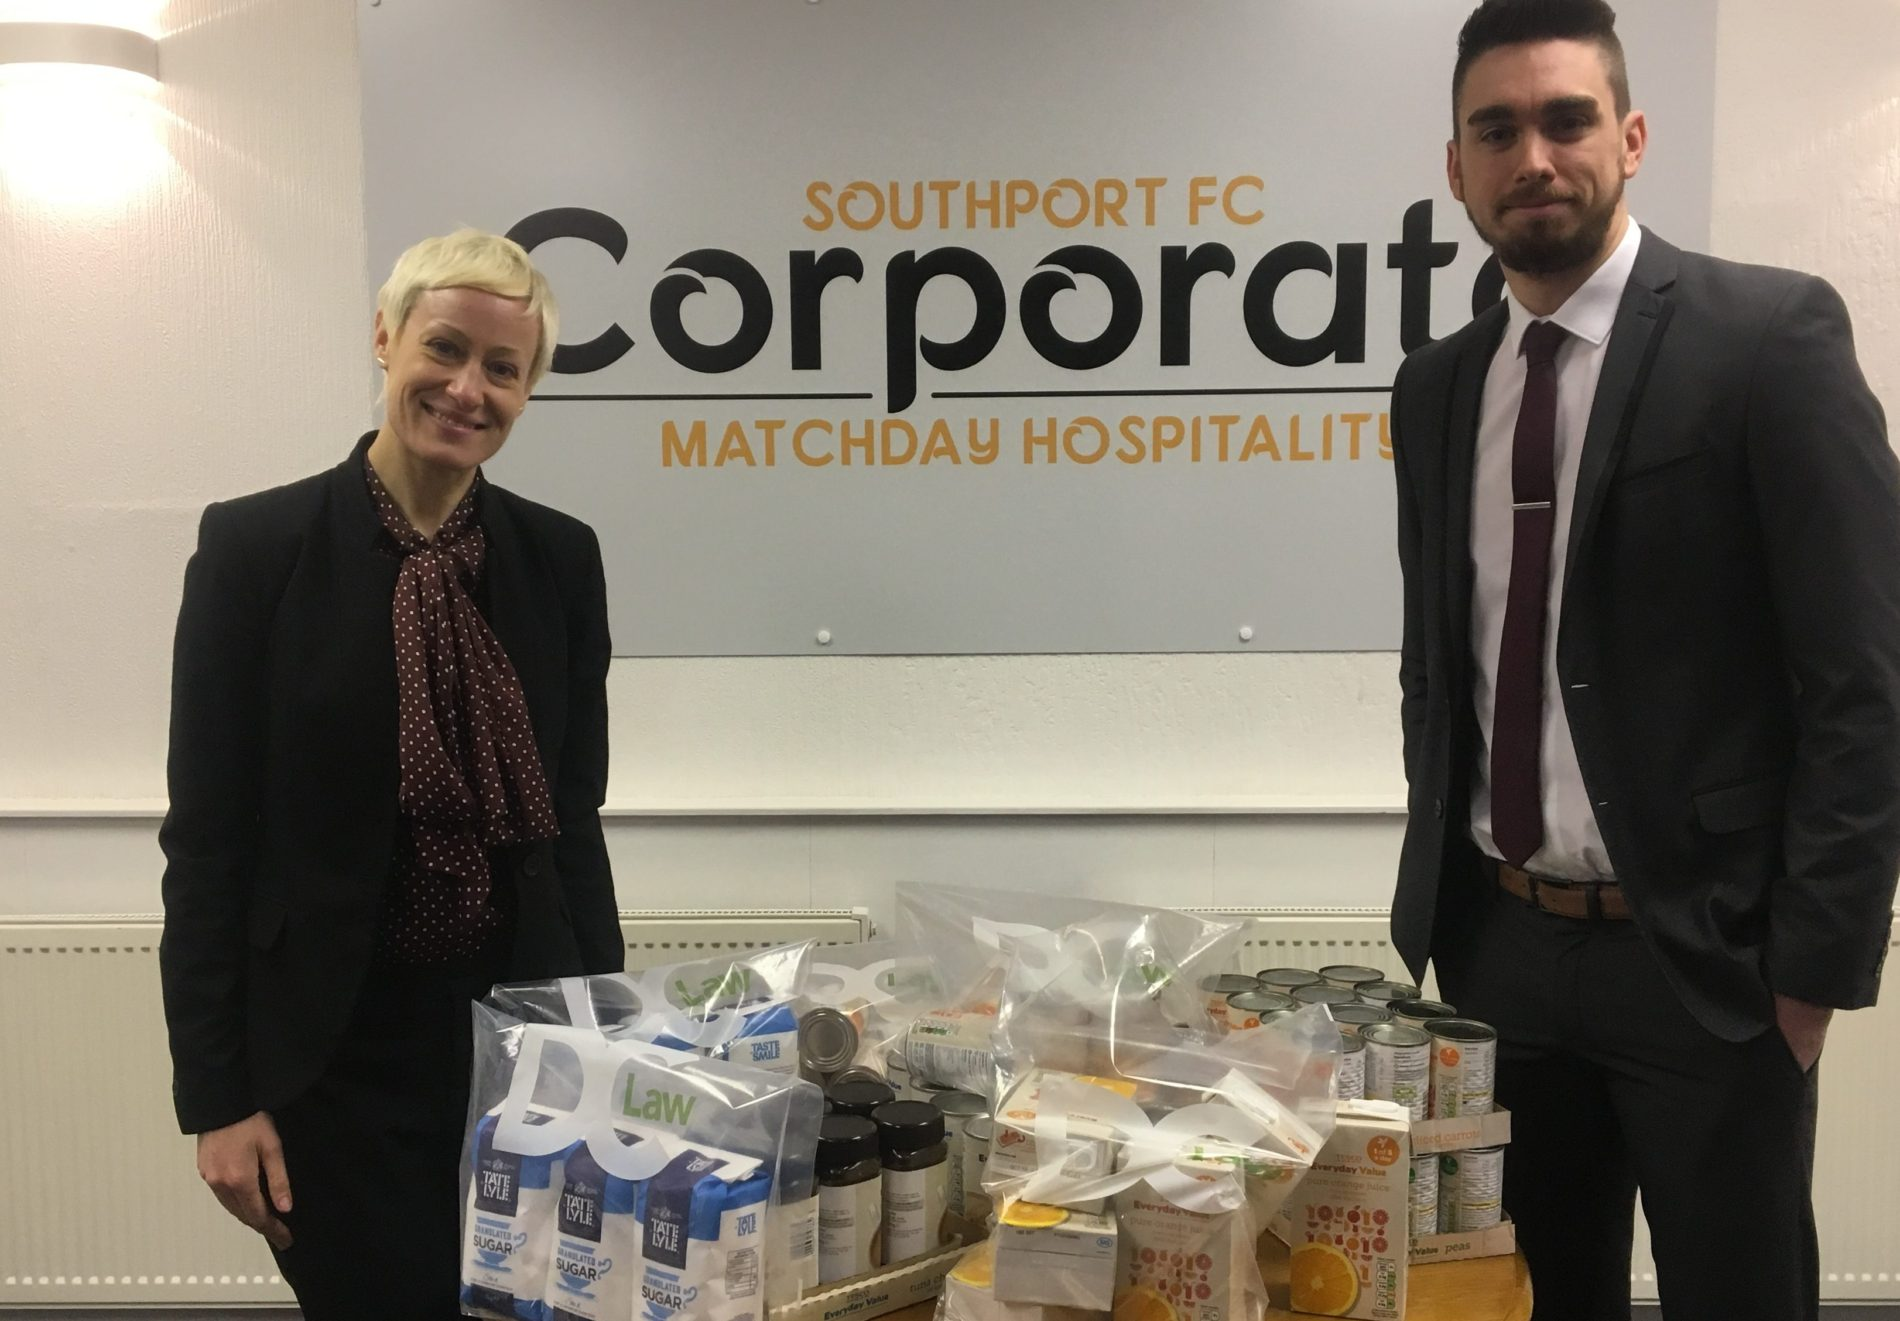 DC Law Make Southport Foodbank Donation